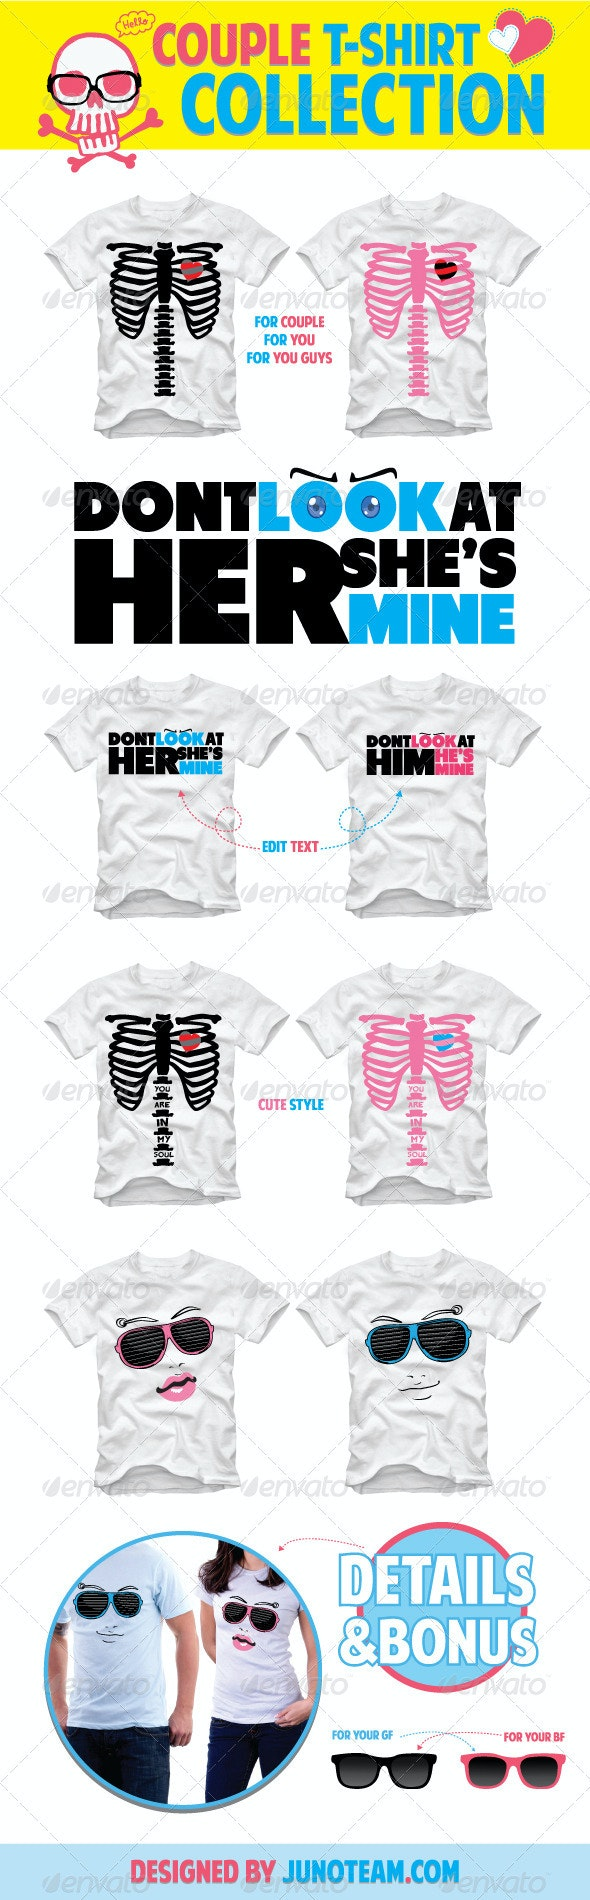 Couple T-Shirt Collection - Funny Designs